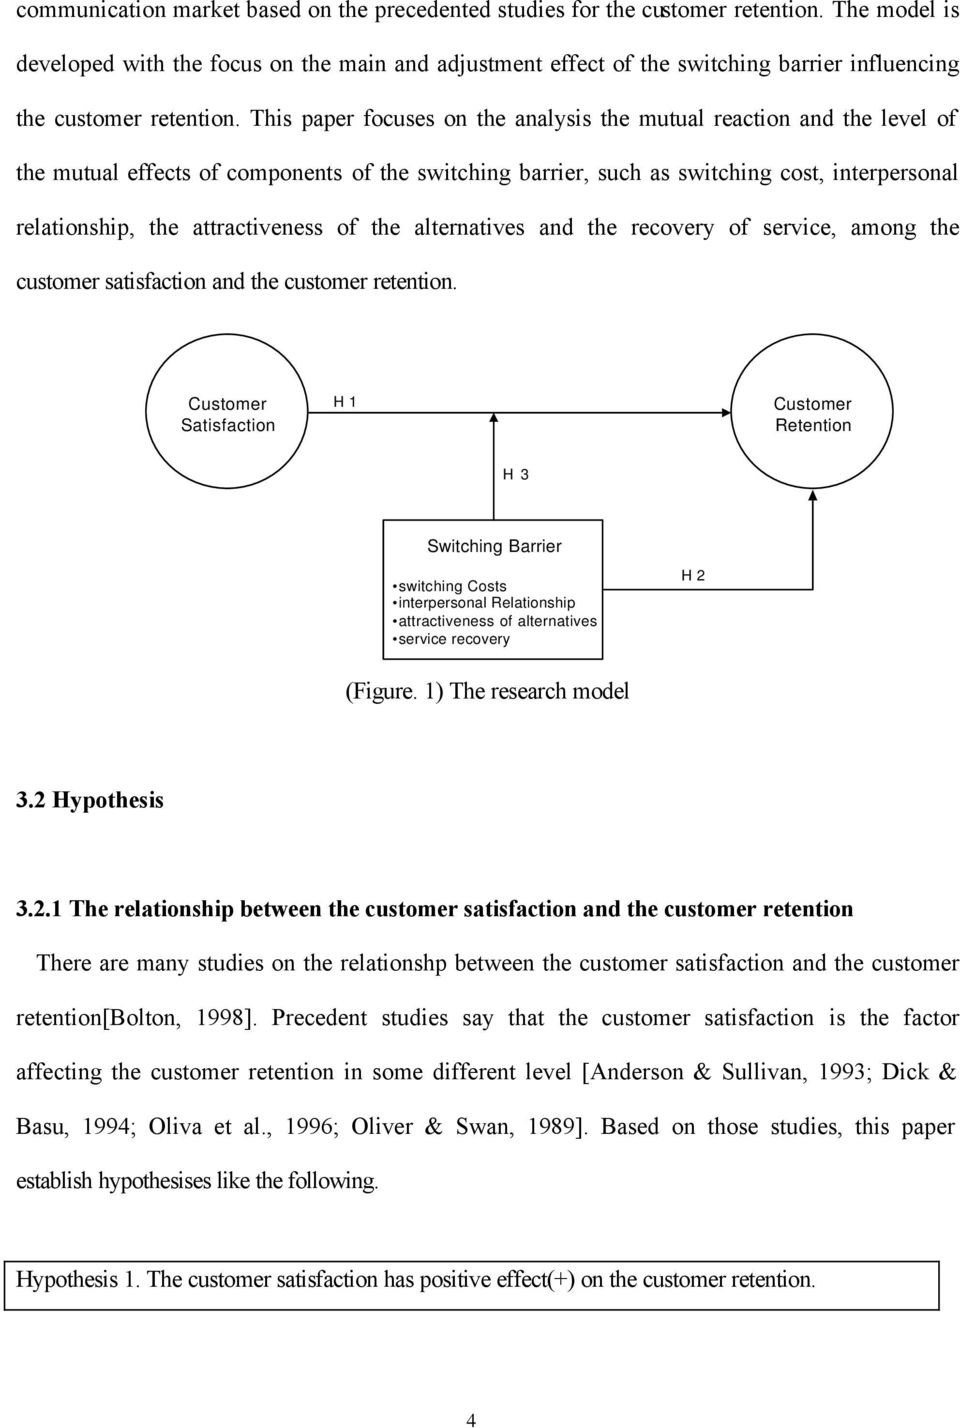 This paper focuses on the analysis the mutual reaction and the level of the mutual effects of components of the switching barrier, such as switching cost, interpersonal relationship, the